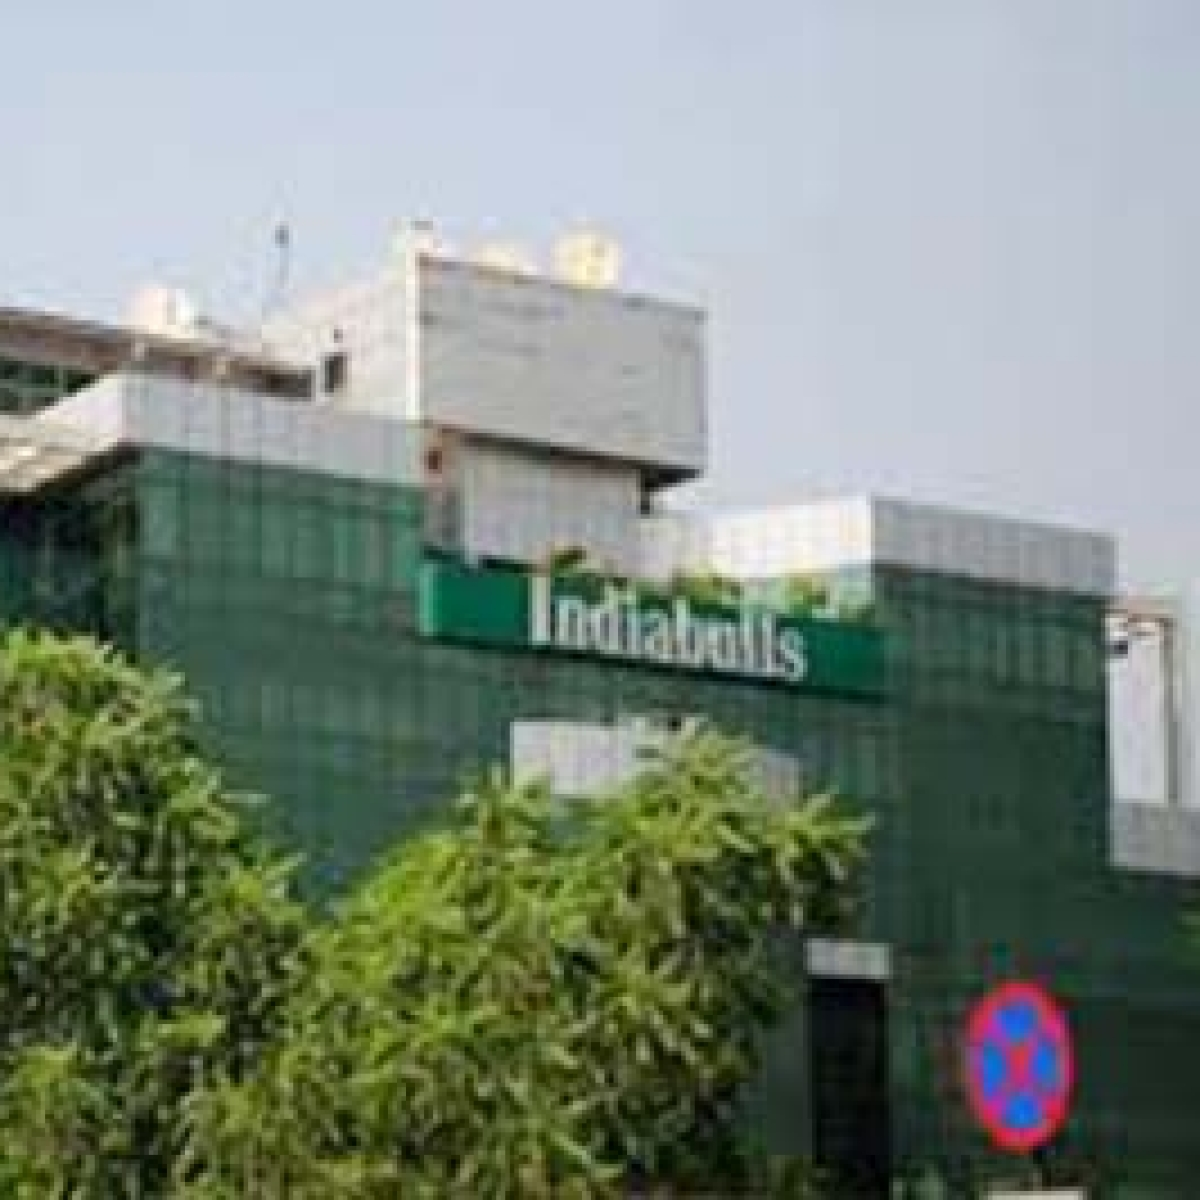 Inspecting complaints against Indiabulls Group: Centre tells Delhi HC